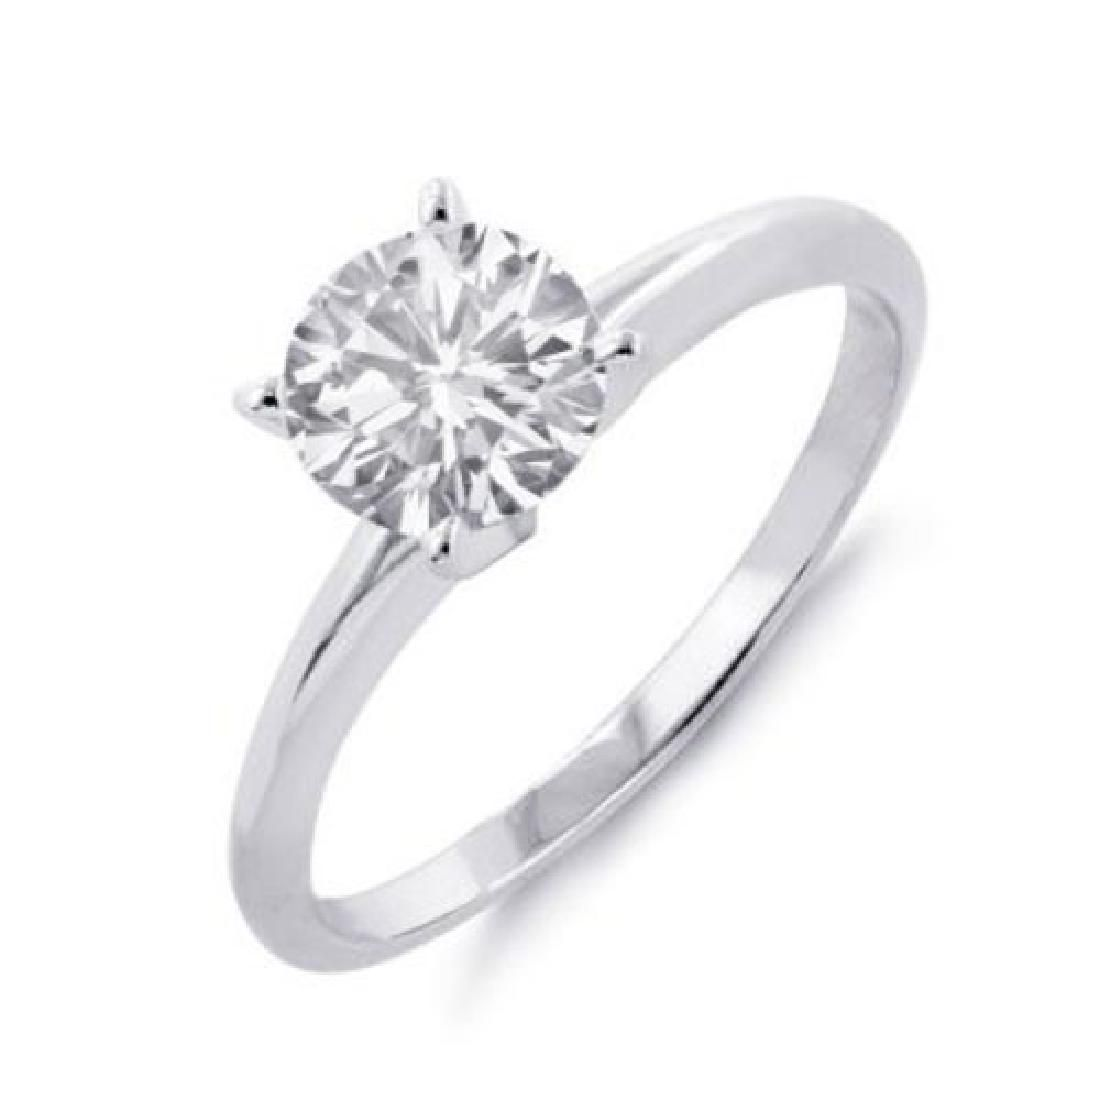 150 CTW Certified VSSI Diamond Solitaire Ring 14K